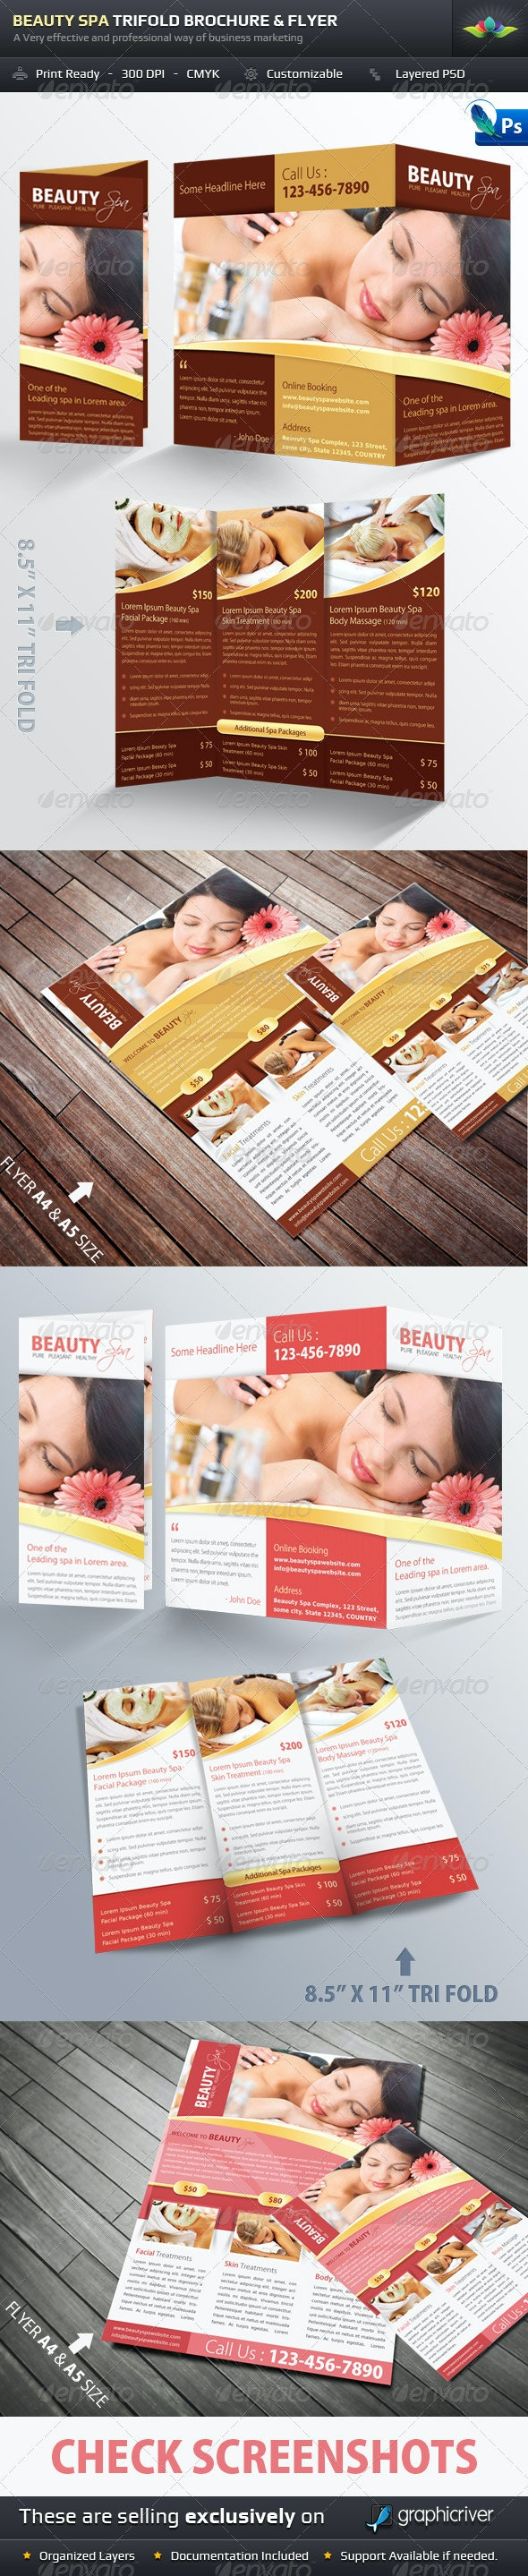 Beauty Spa Trifold Brochure & Flyer Pack - Brochures Print Templates